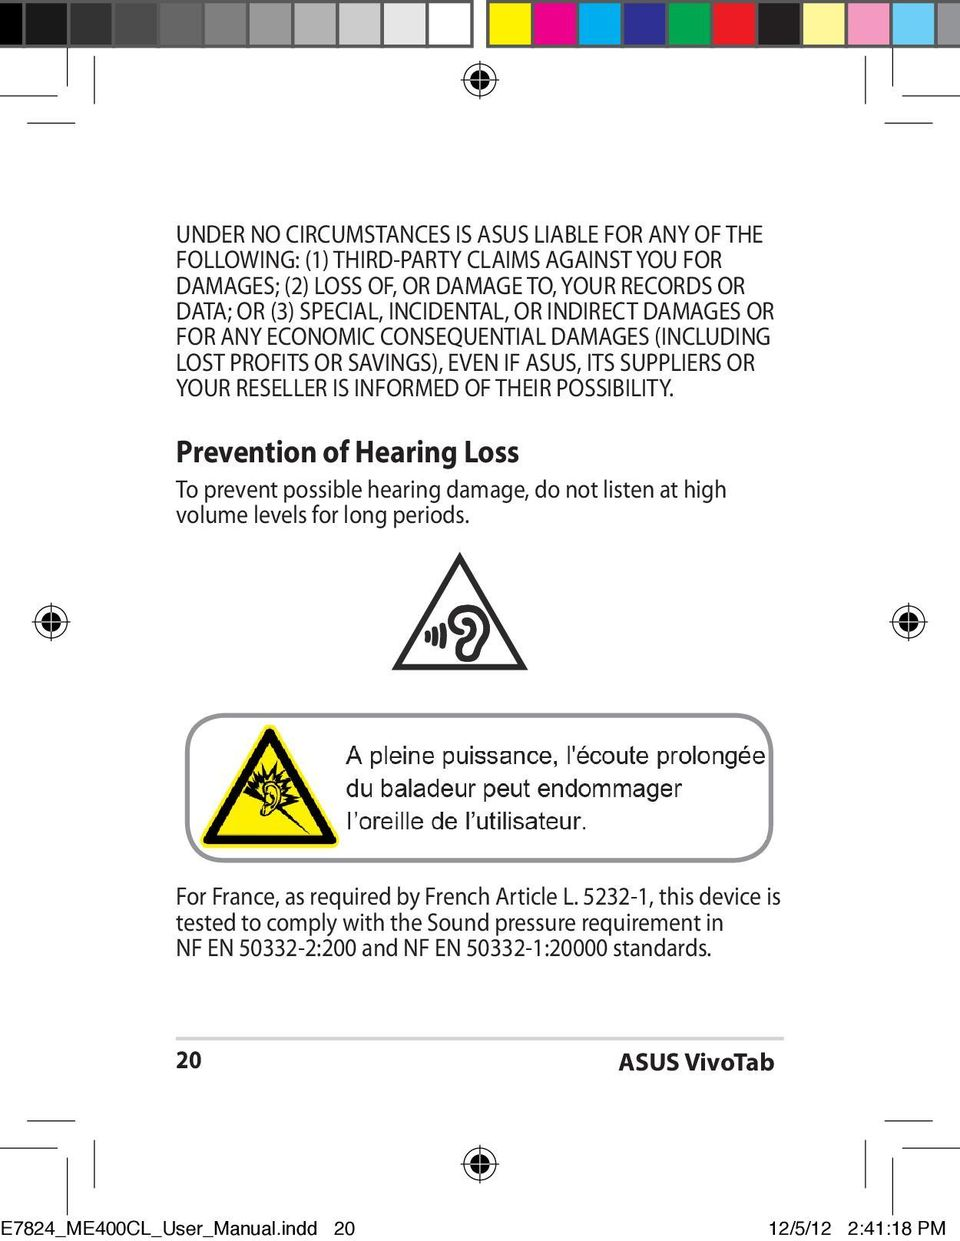 POSSIBILITY. Prevention of Hearing Loss To prevent possible hearing damage, do not listen at high volume levels for long periods. For France, as required by French Article L.